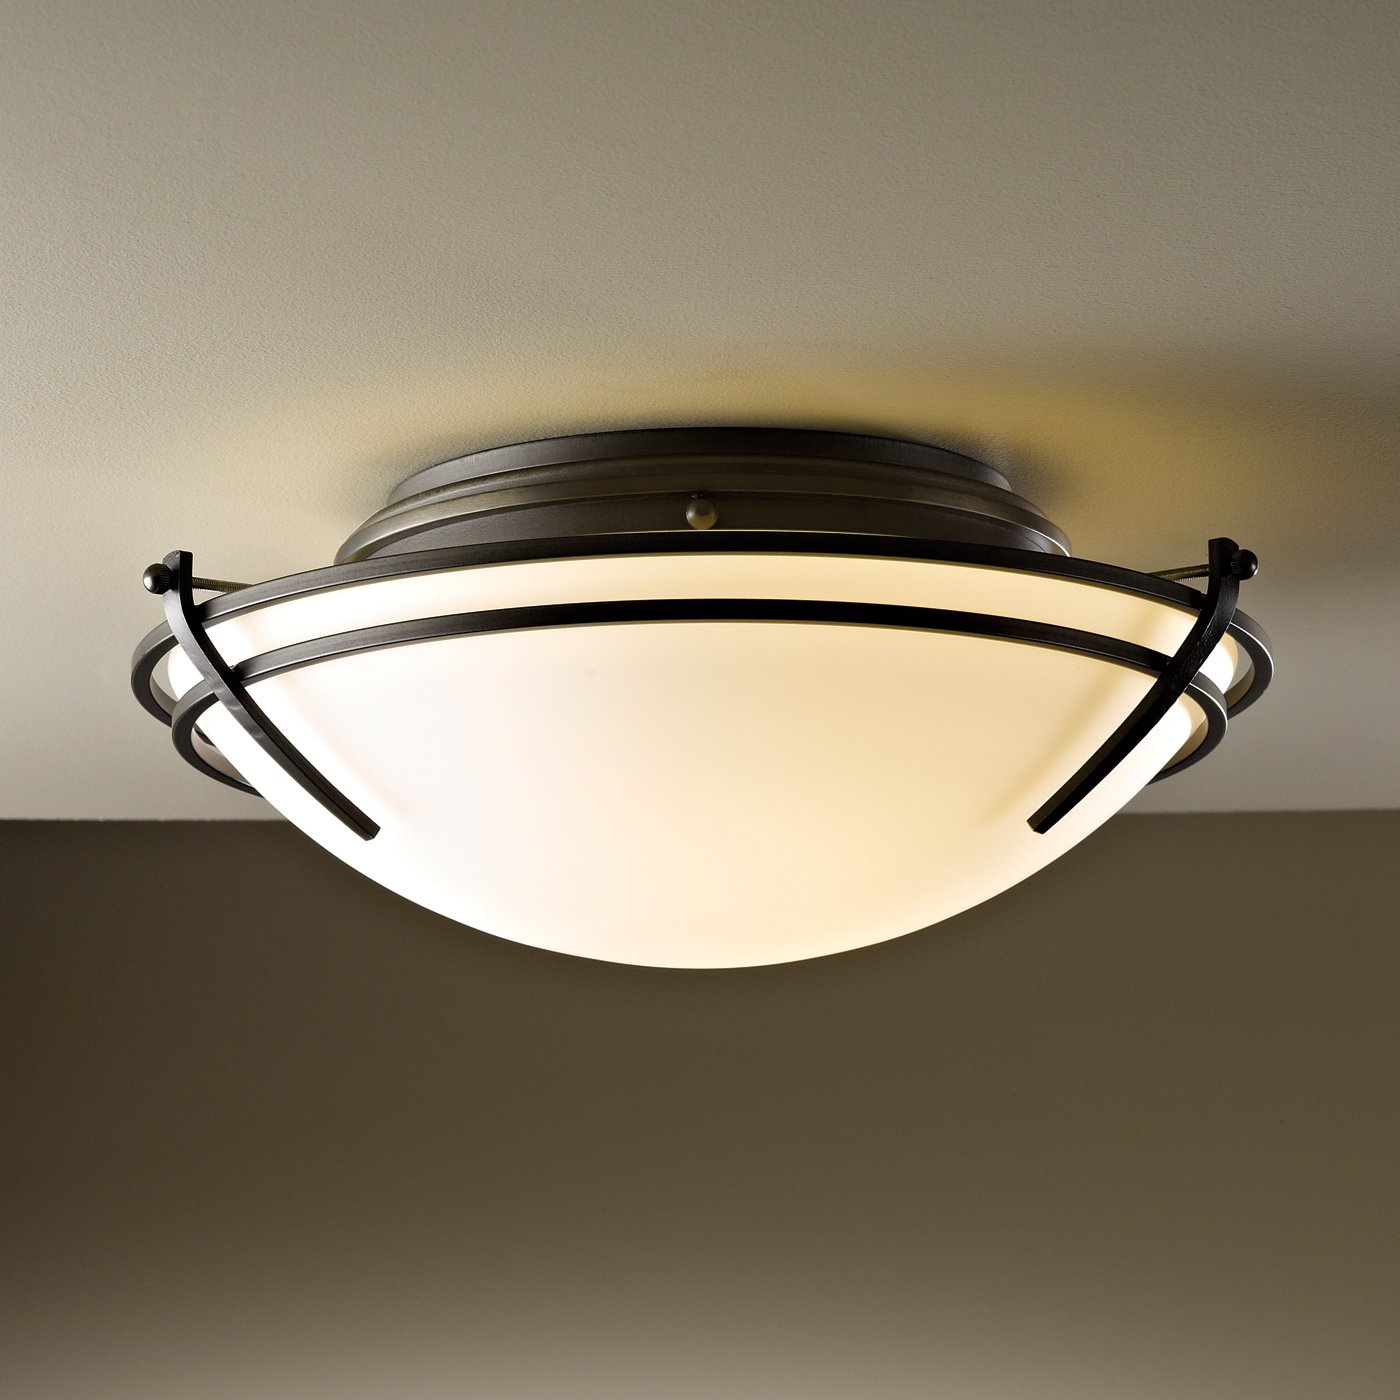 Ceiling Mounted Picture Lights